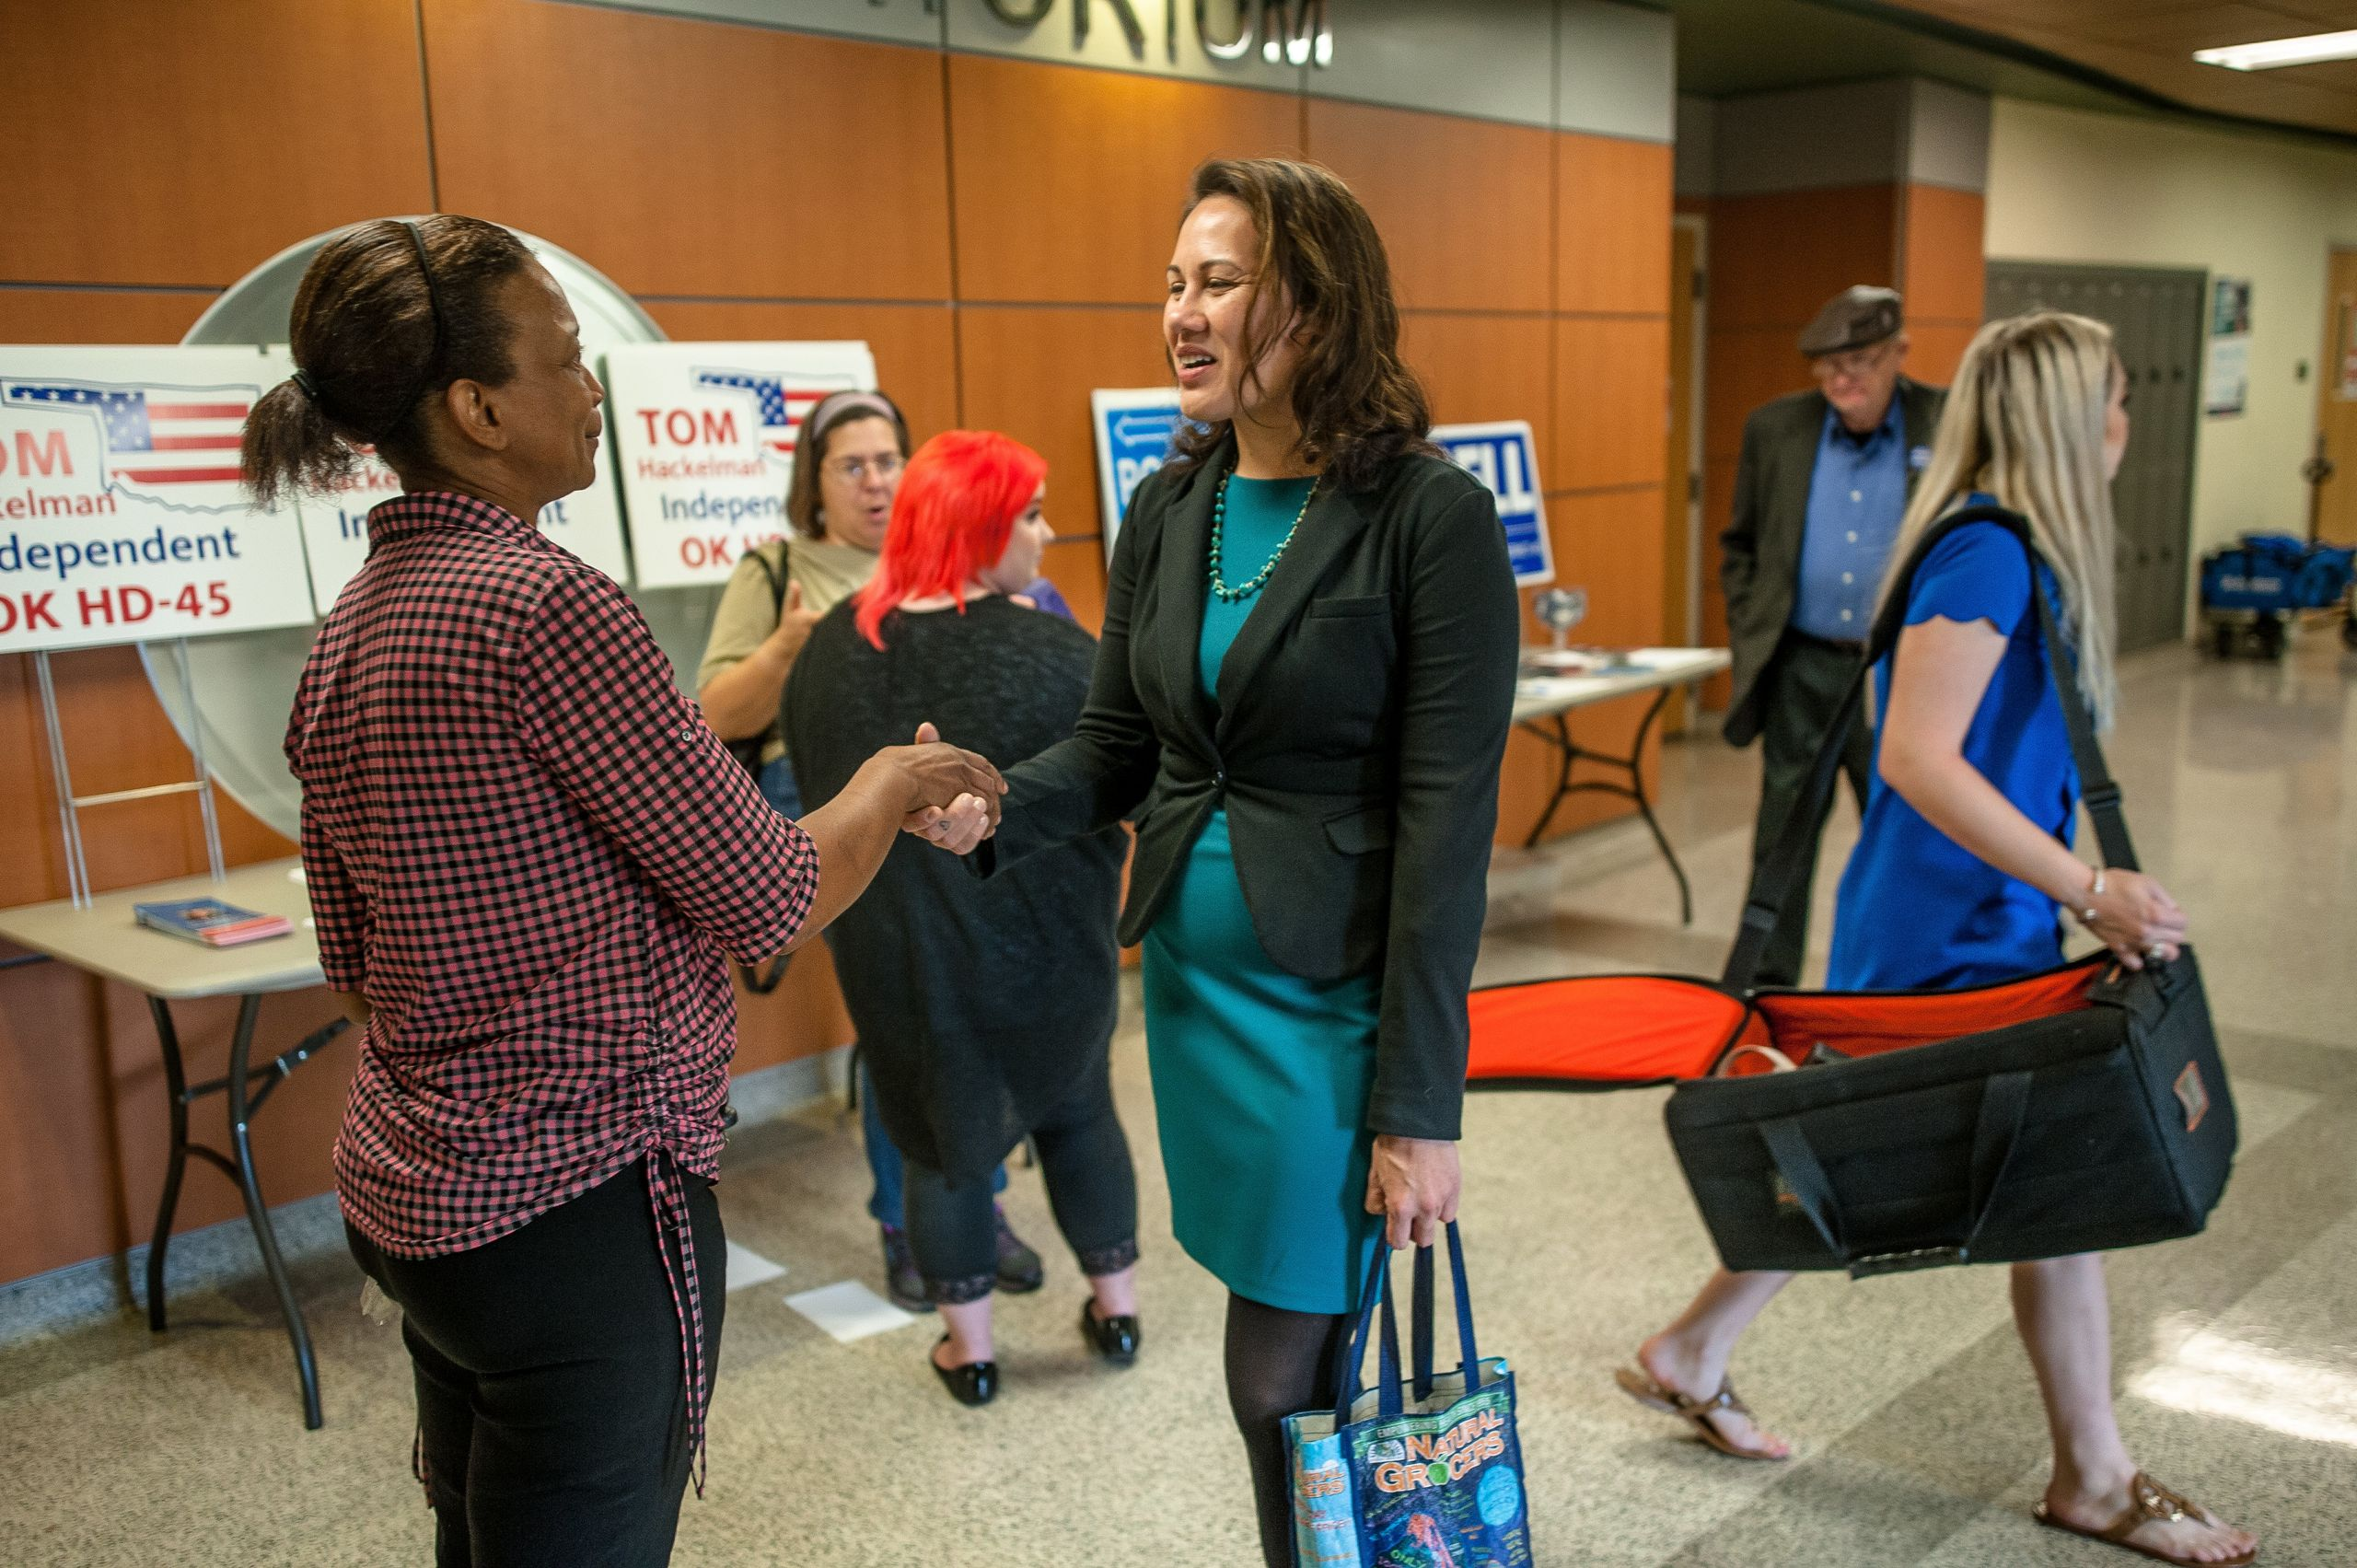 McCray talks to a constituent at a candidate forum in Oklahoma City.